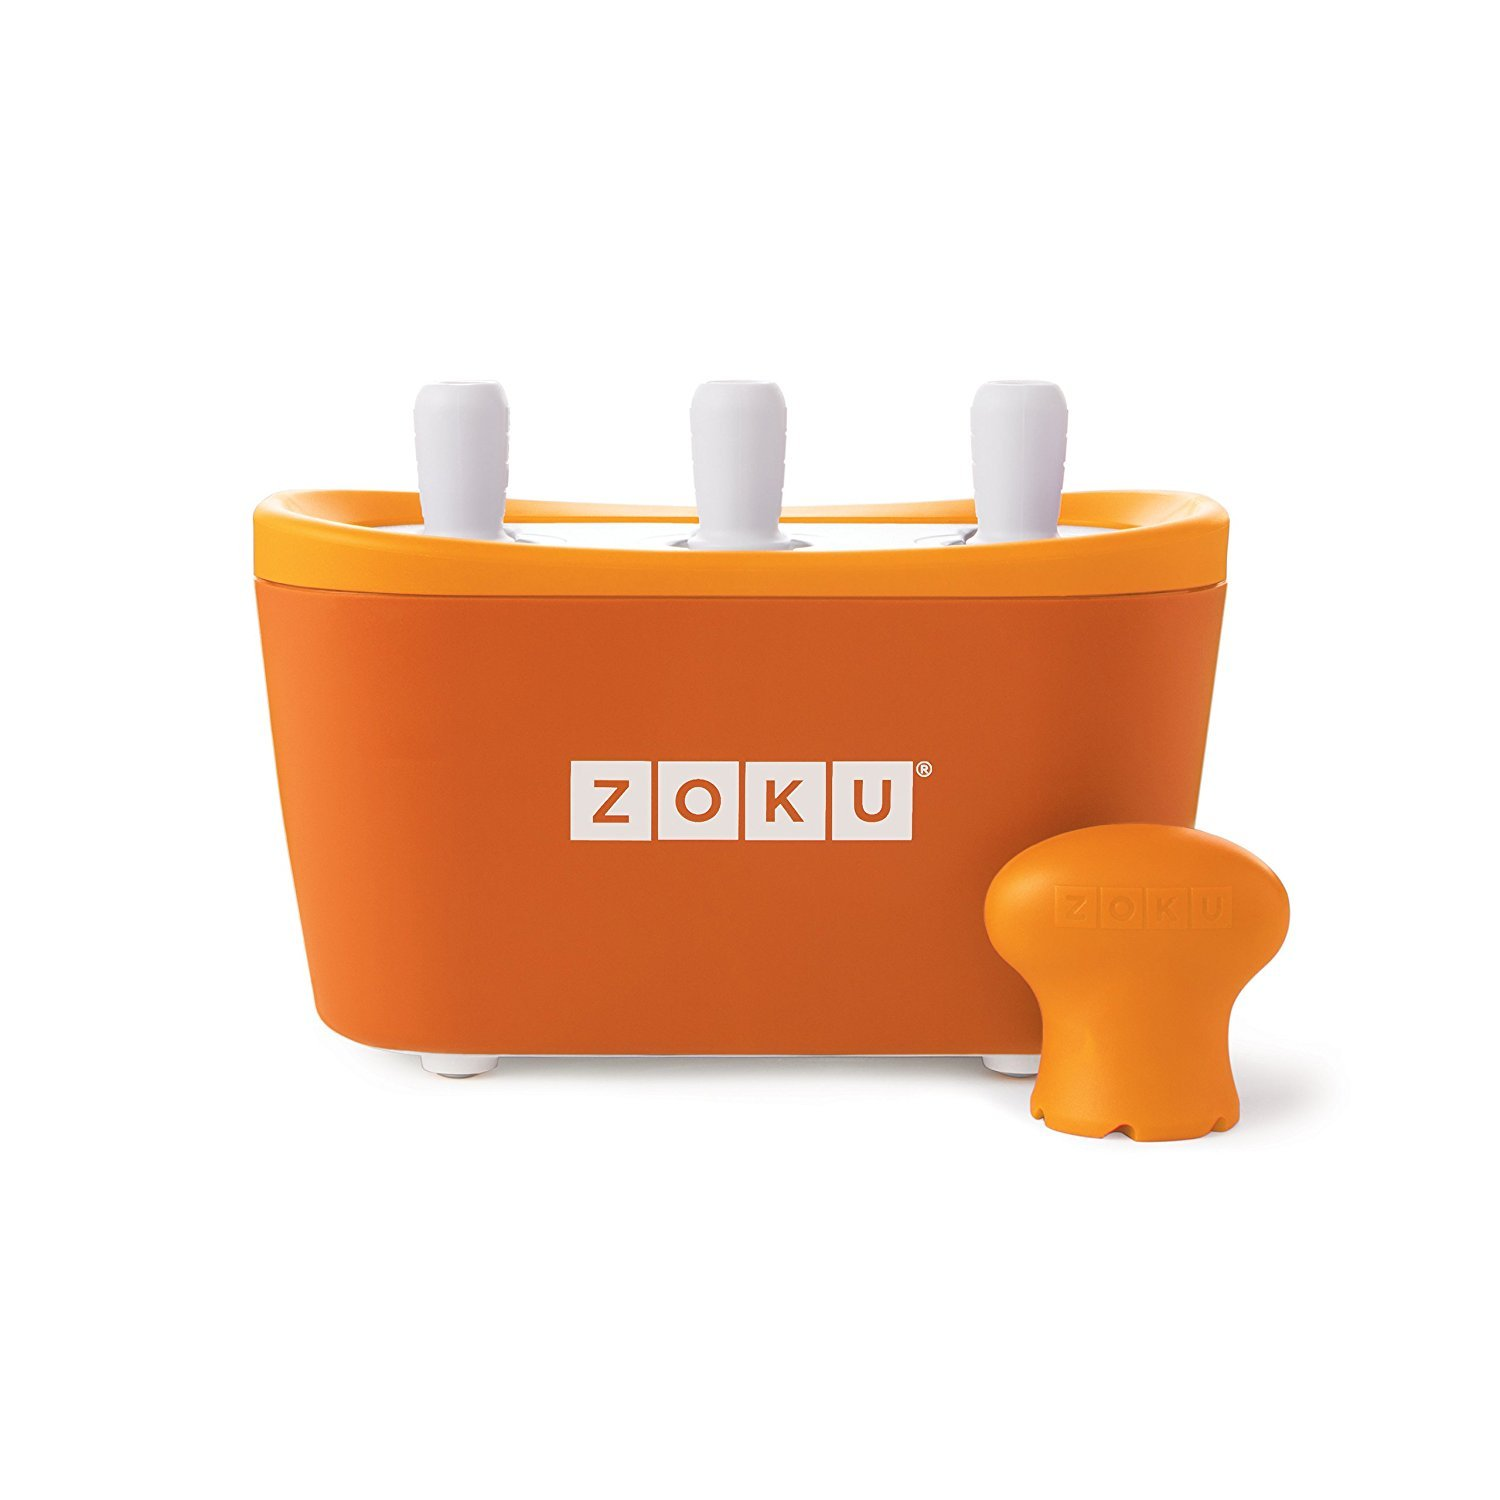 Zoku Quick Pop Maker, Orange